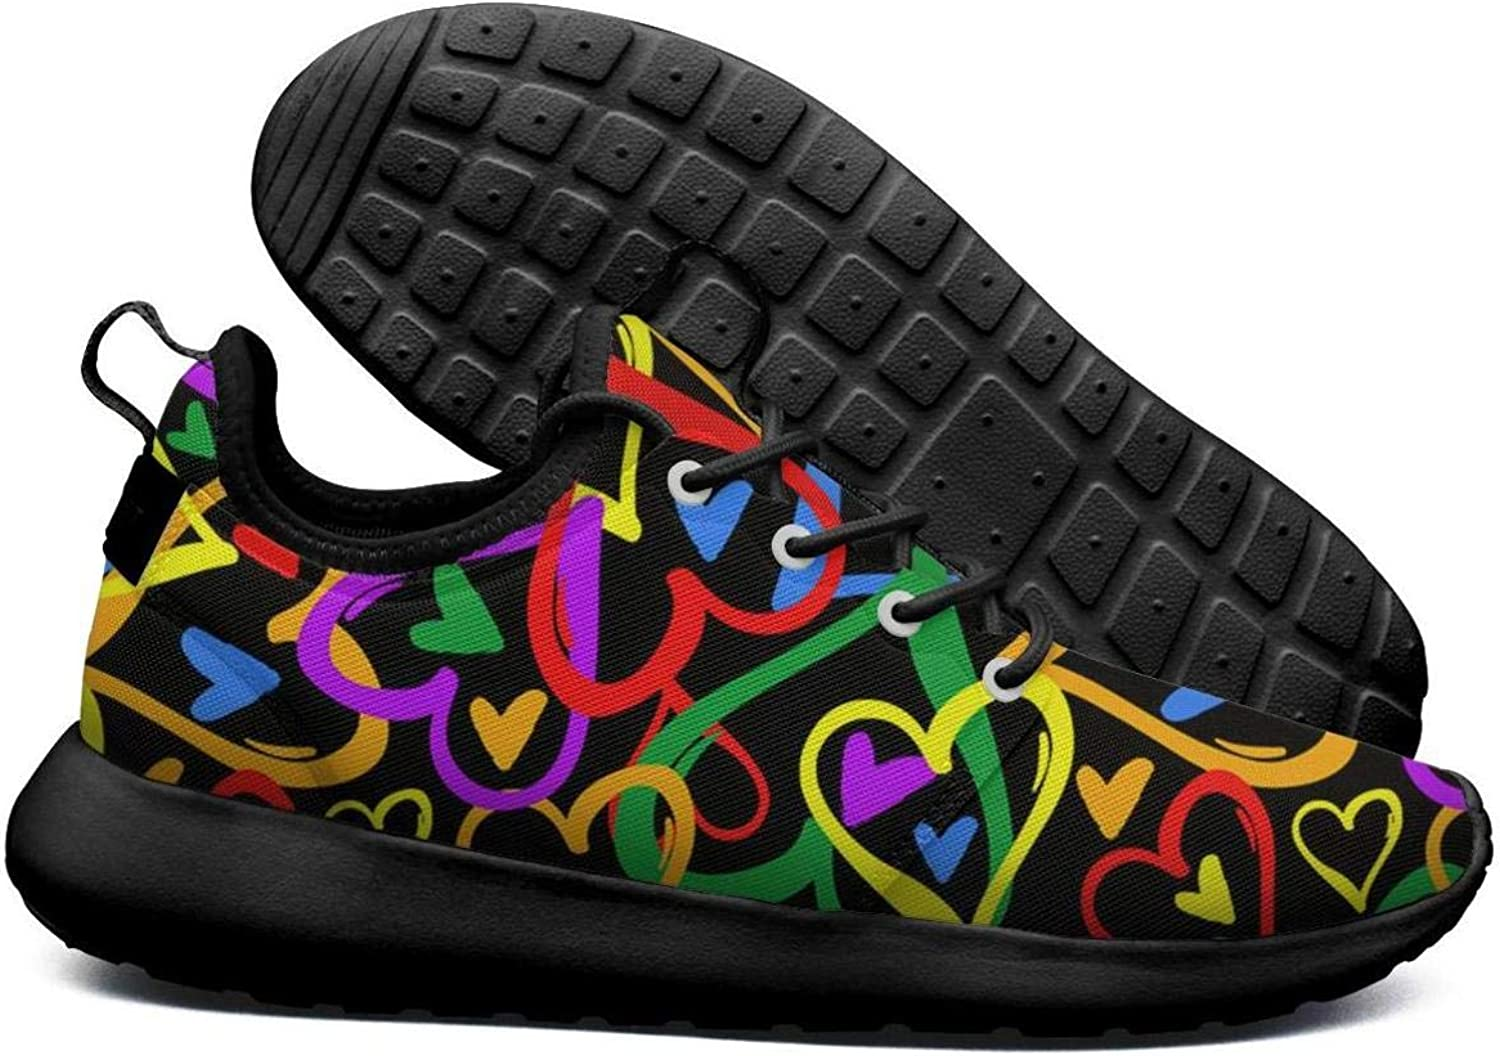 Opr7 Gay Pride Rainbow colord Hearts- Running shoes Lightweight for Women Sneaker Sport Quick Dry